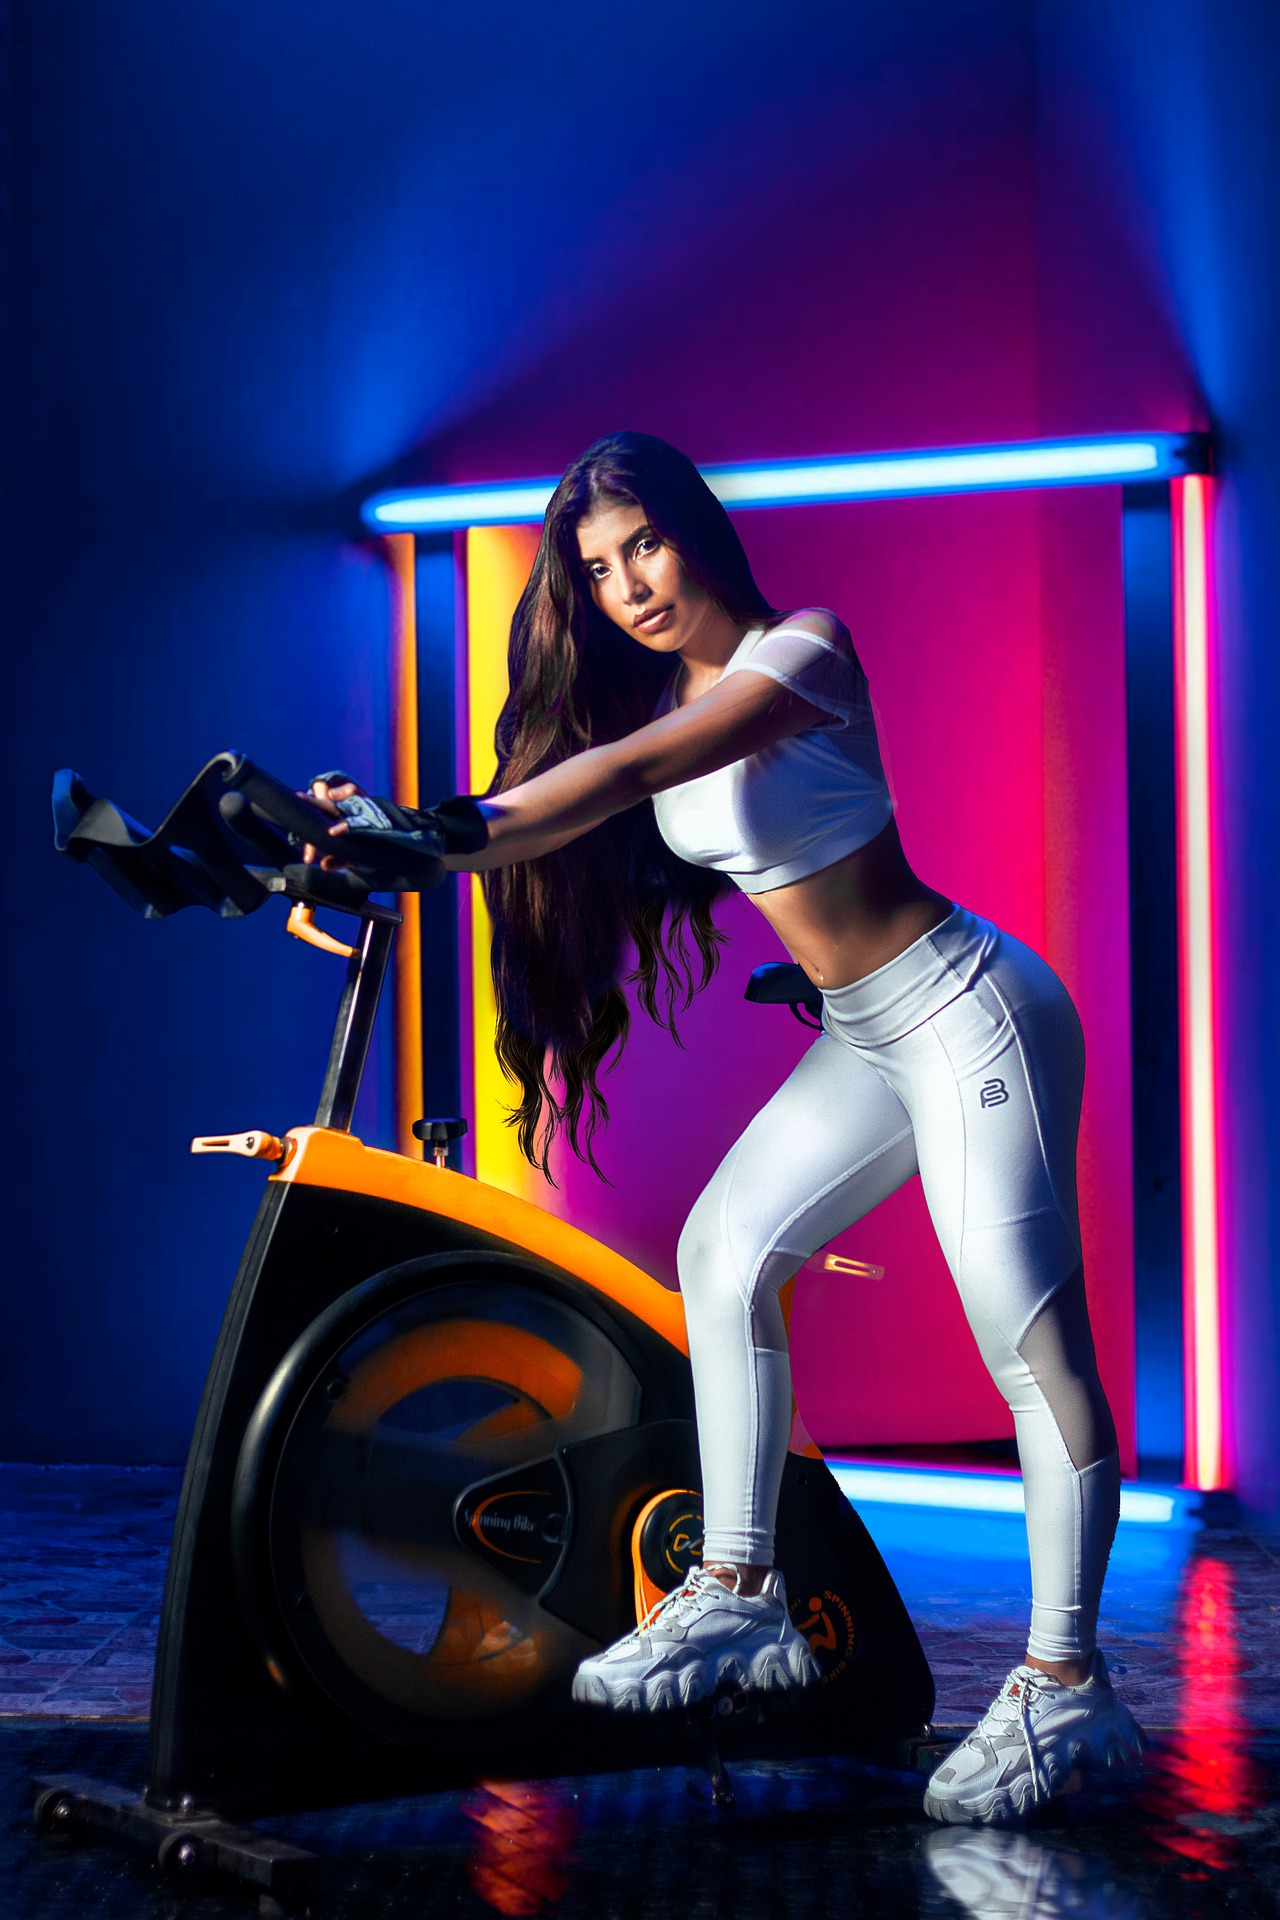 Exercise Bikes To Suit Every Budget